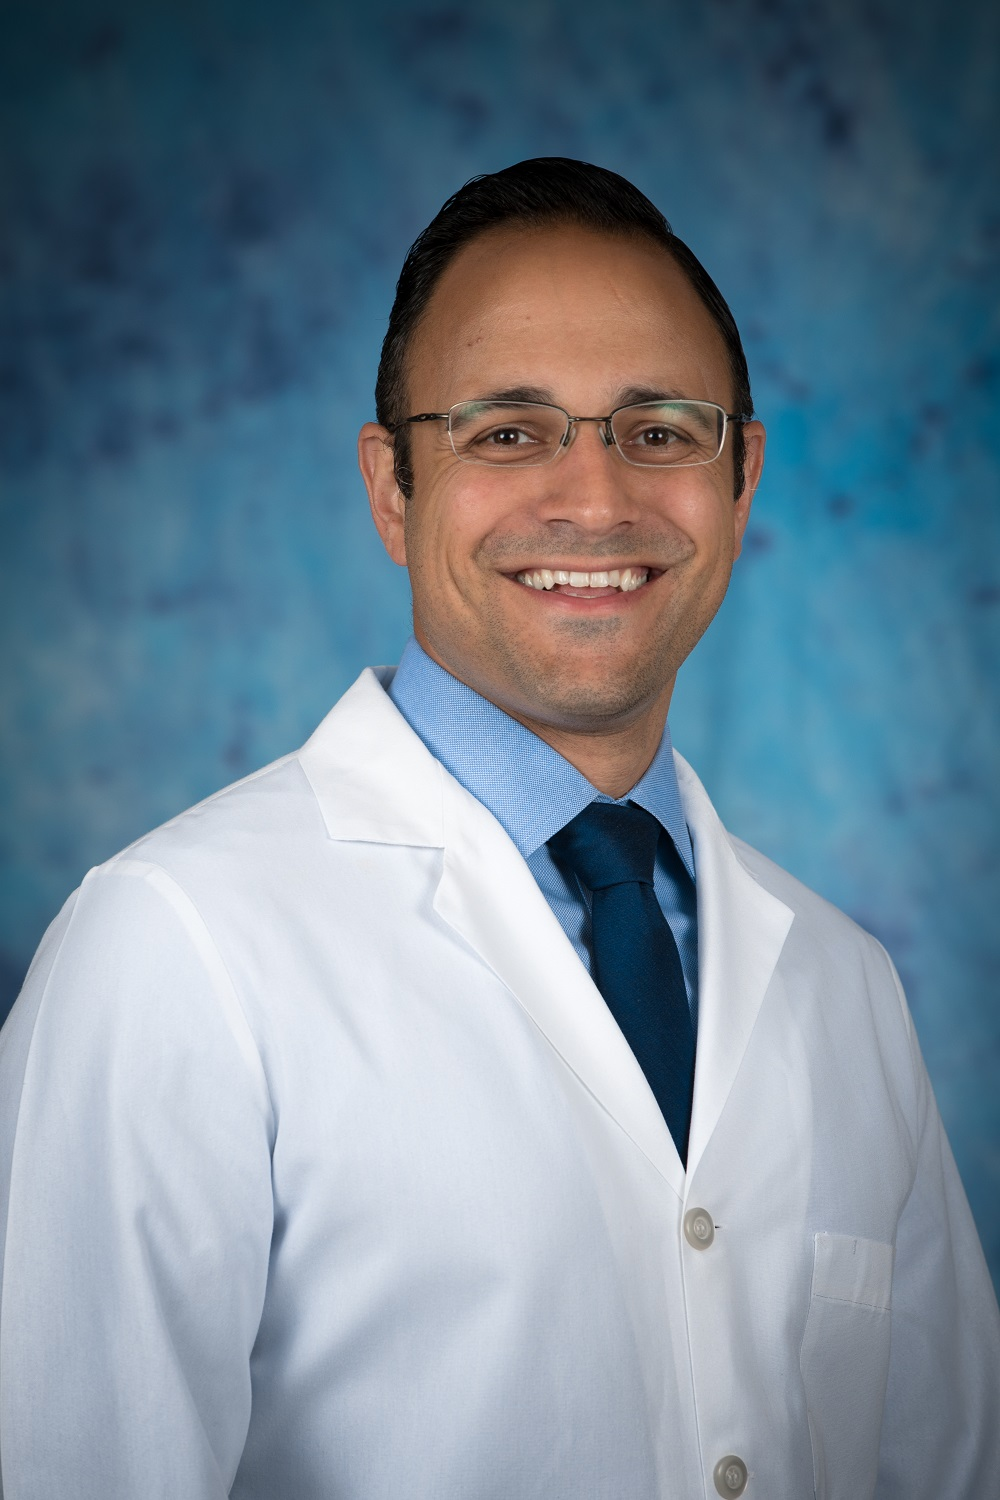 Perinatologist Steven Andrade, MD of the high-risk pregnancy team at Fort Sanders Perinatal Center.